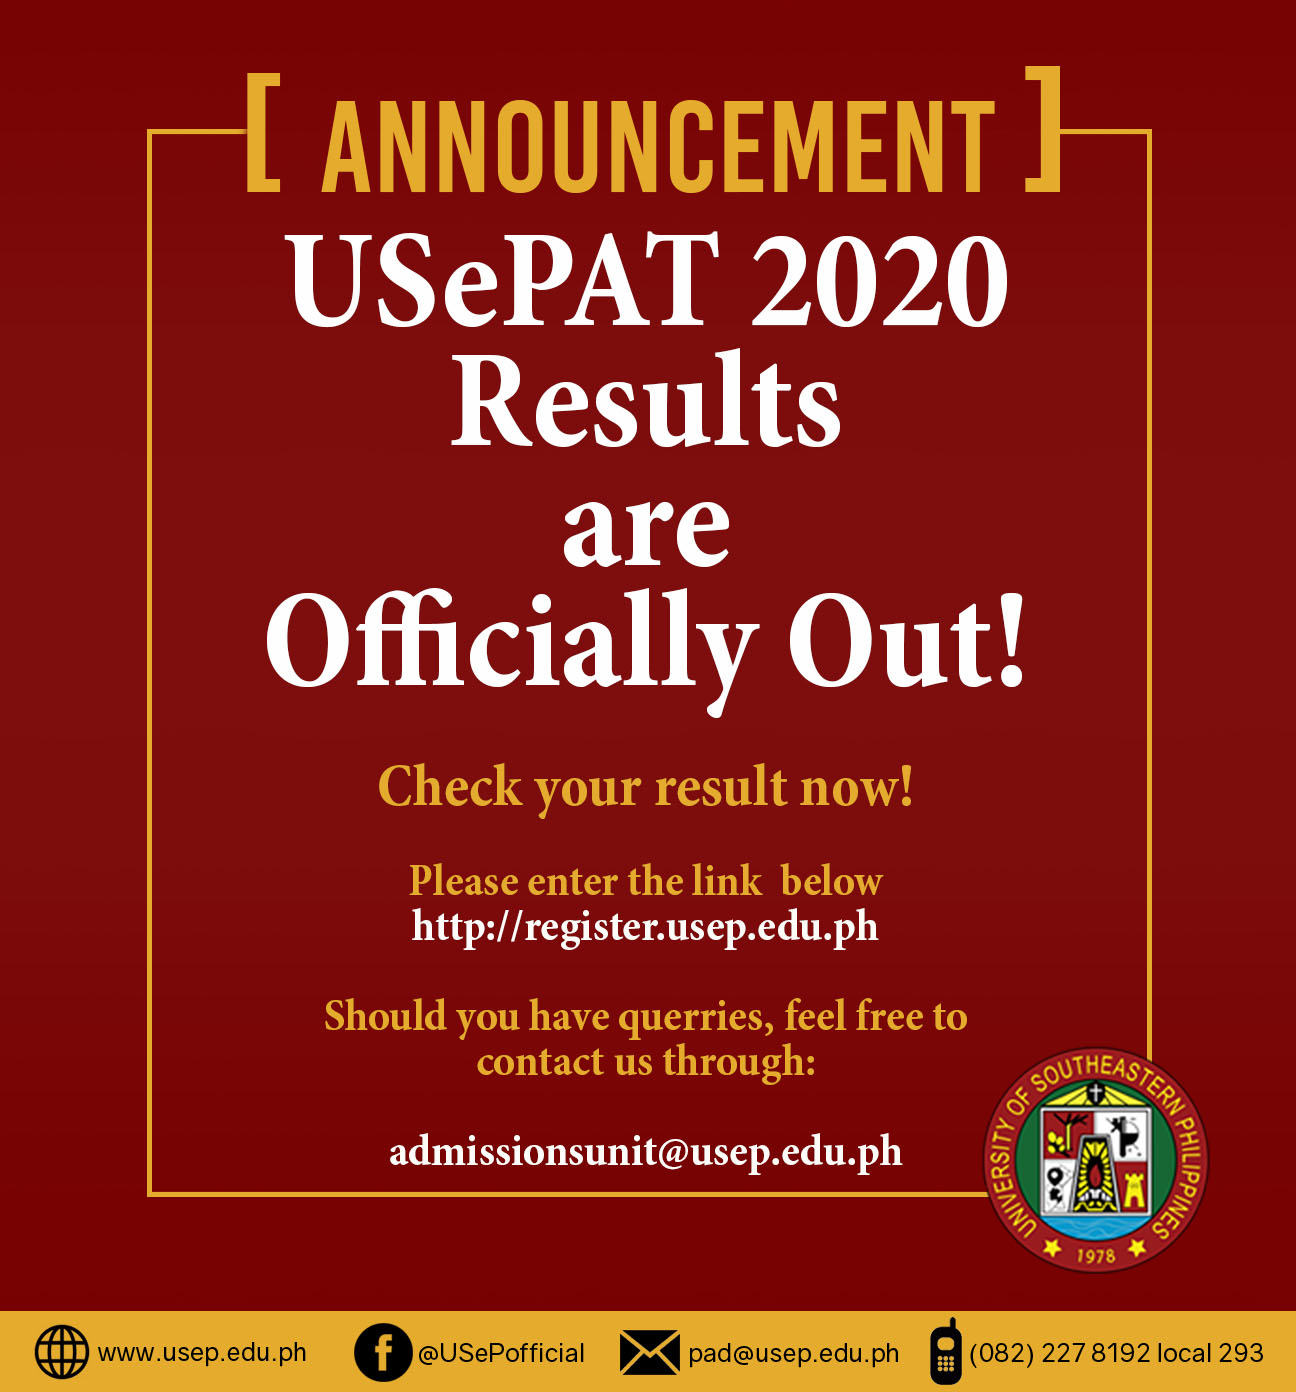 announcement-usepat-2020-results